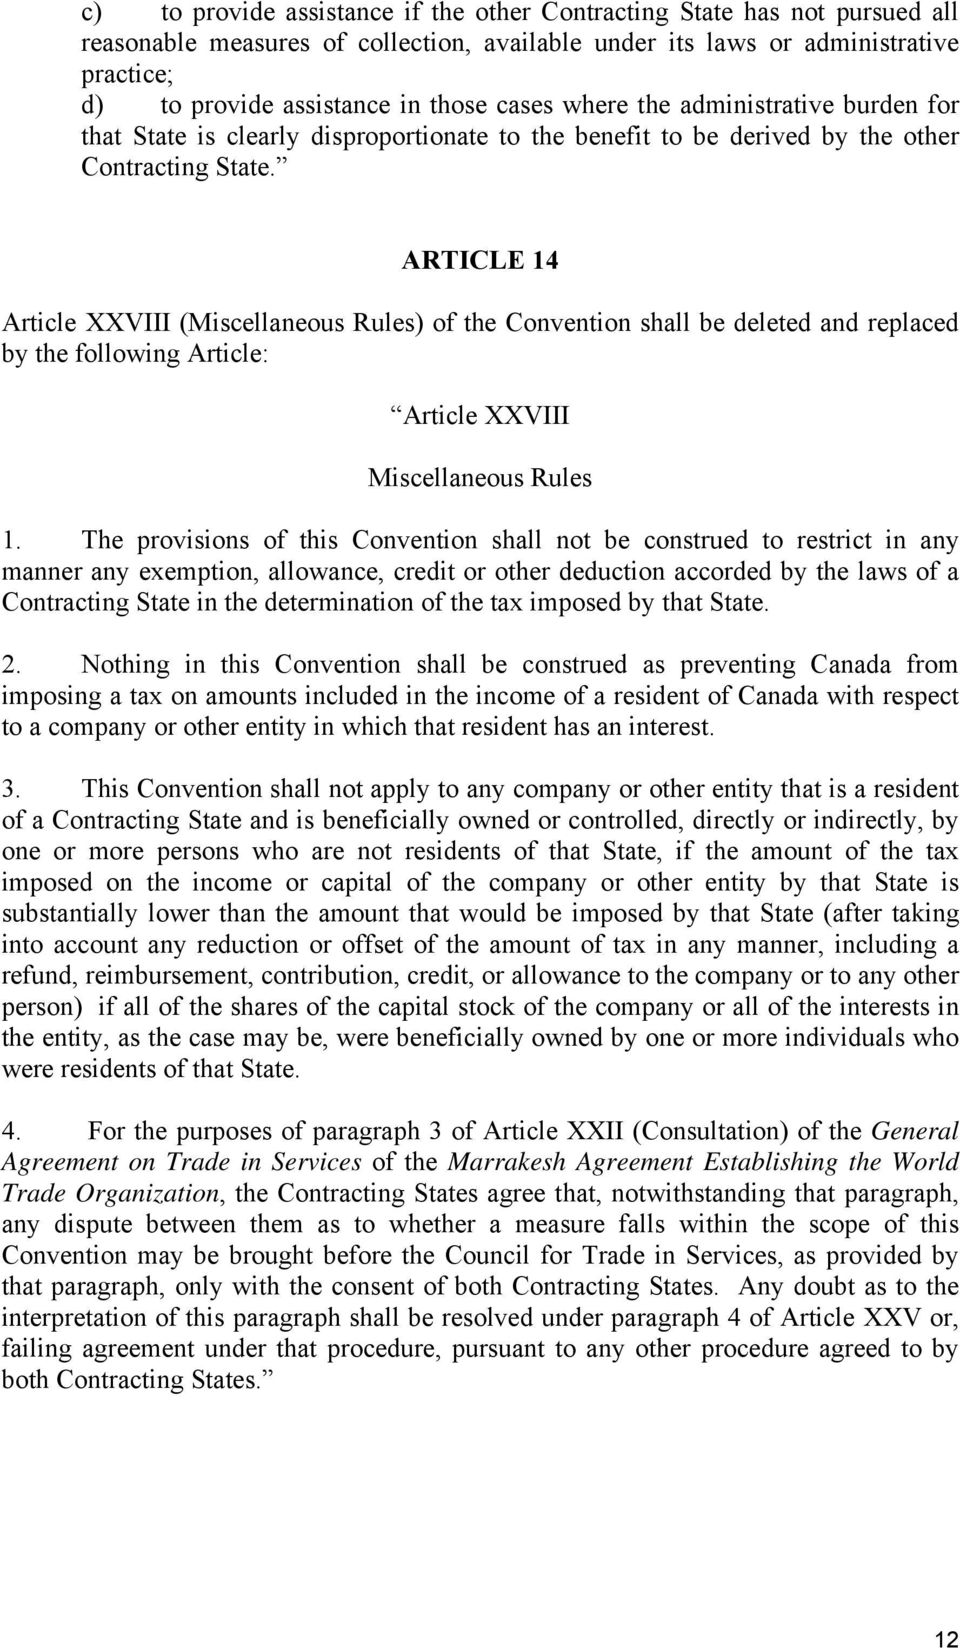 ARTICLE 14 Article XXVIII (Miscellaneous Rules) of the Convention shall be deleted and replaced by the following Article: Article XXVIII Miscellaneous Rules 1.